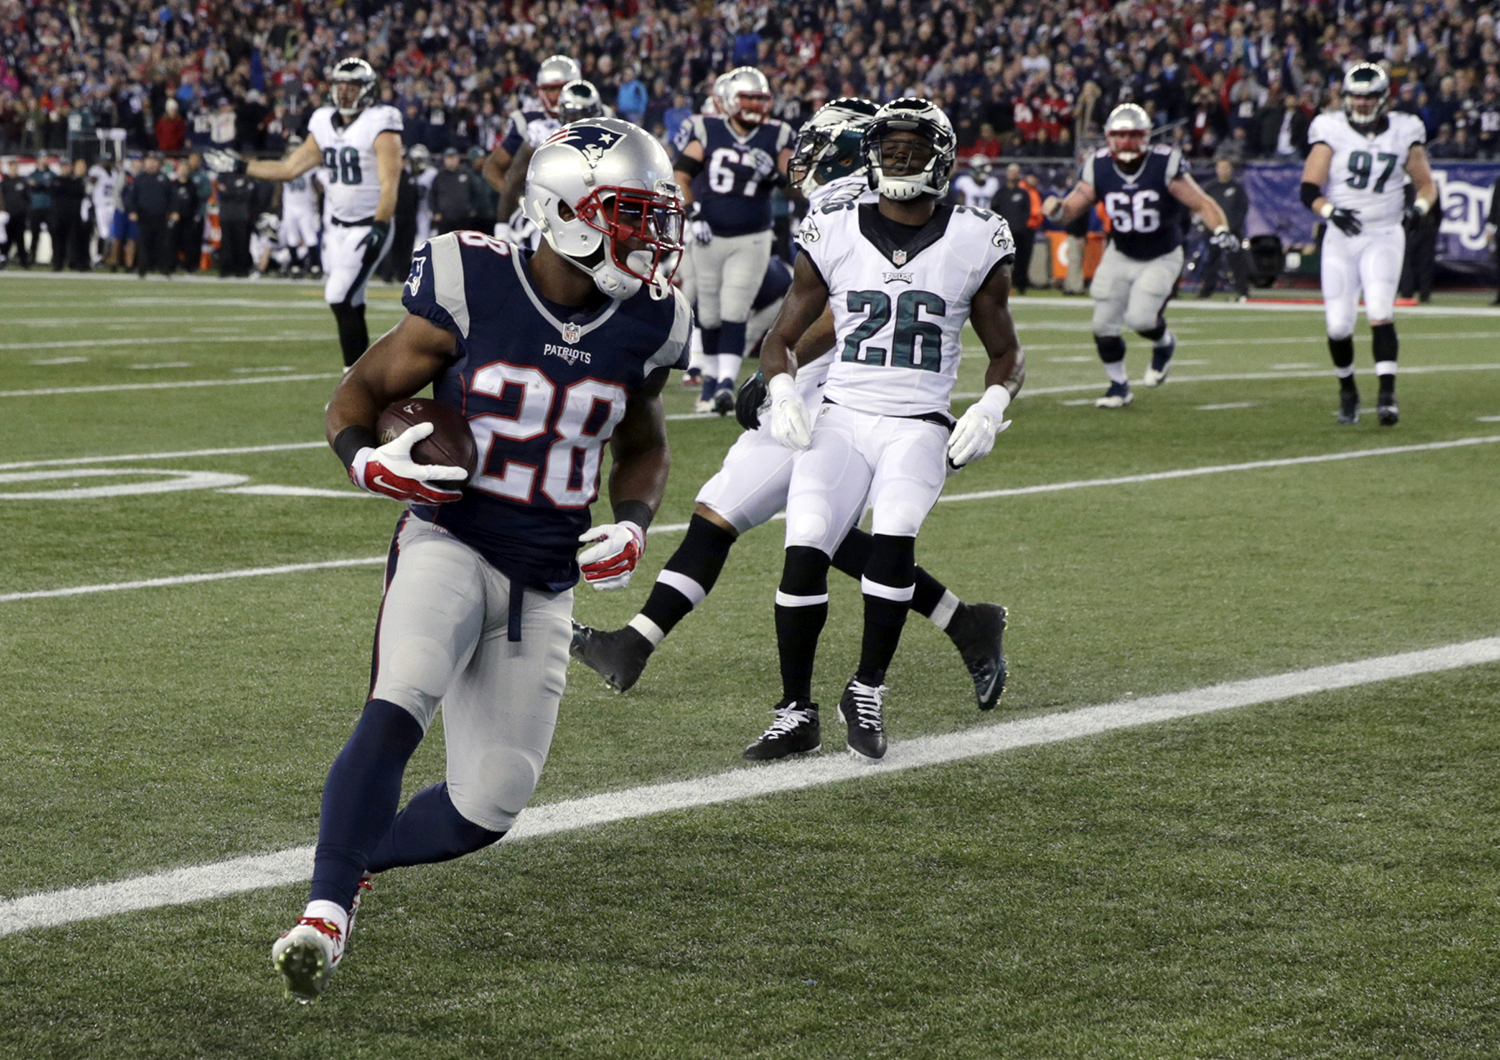 93932593dbe820 https   www.pressherald.com media gallery patriots-take-eagles  2015 ...